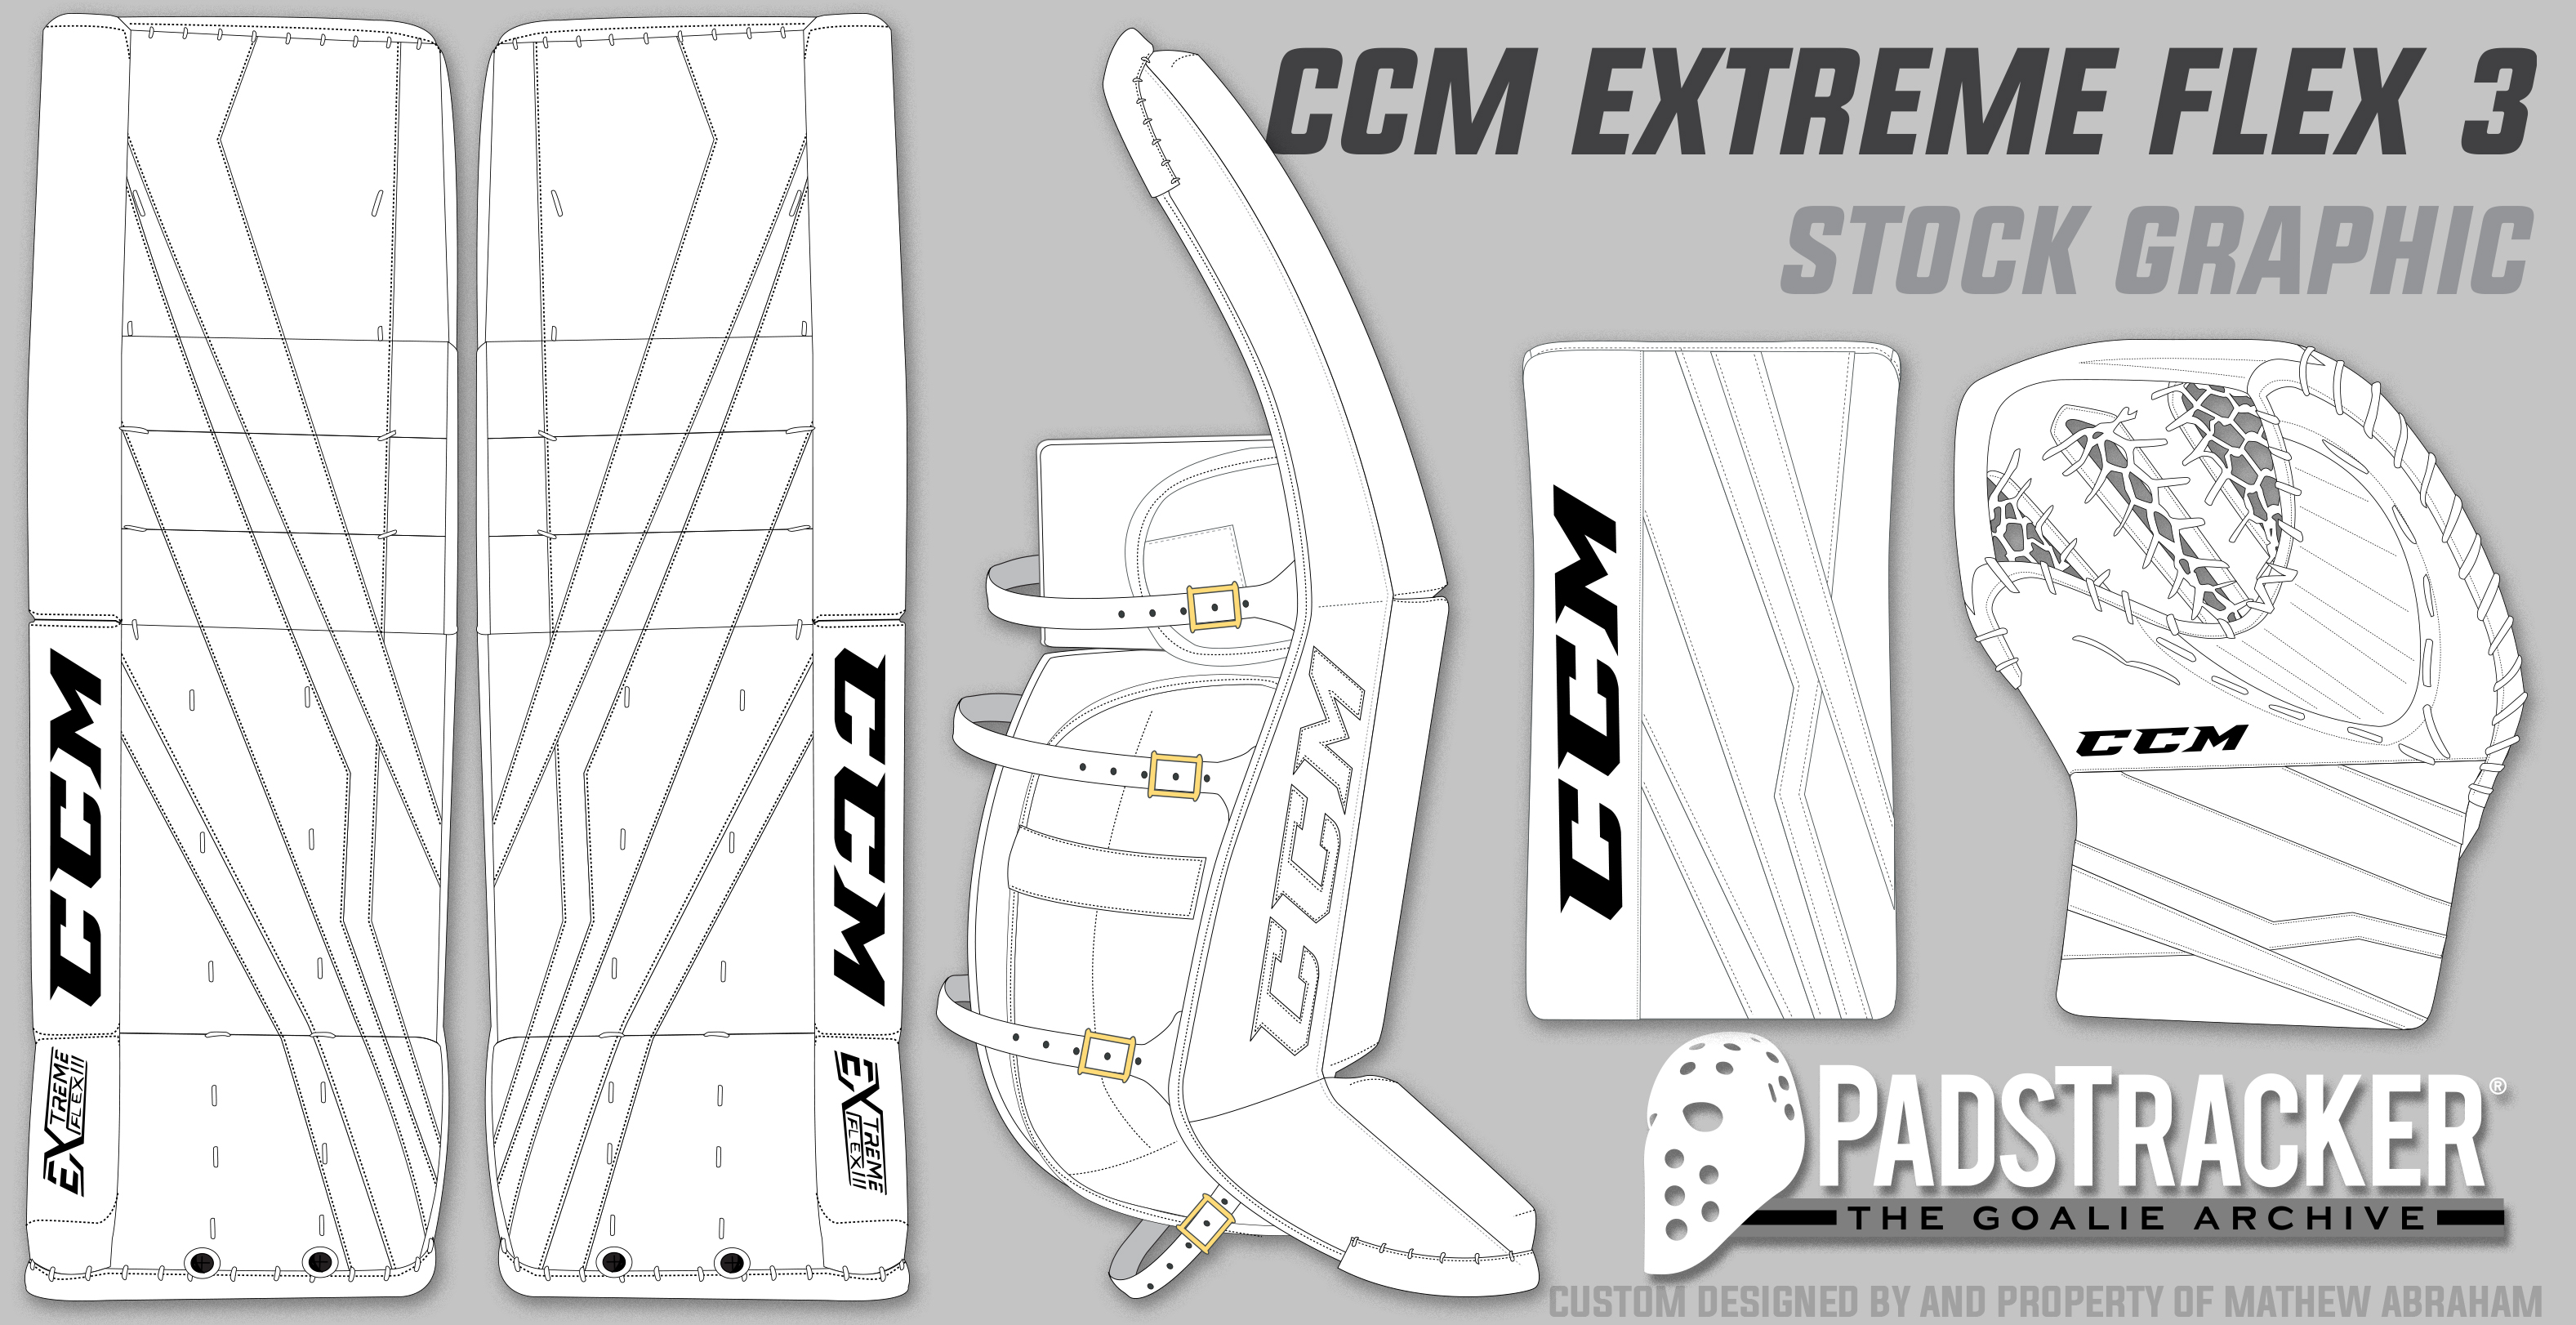 First Look Ccm Extreme Flex 3 The Goalie Archive